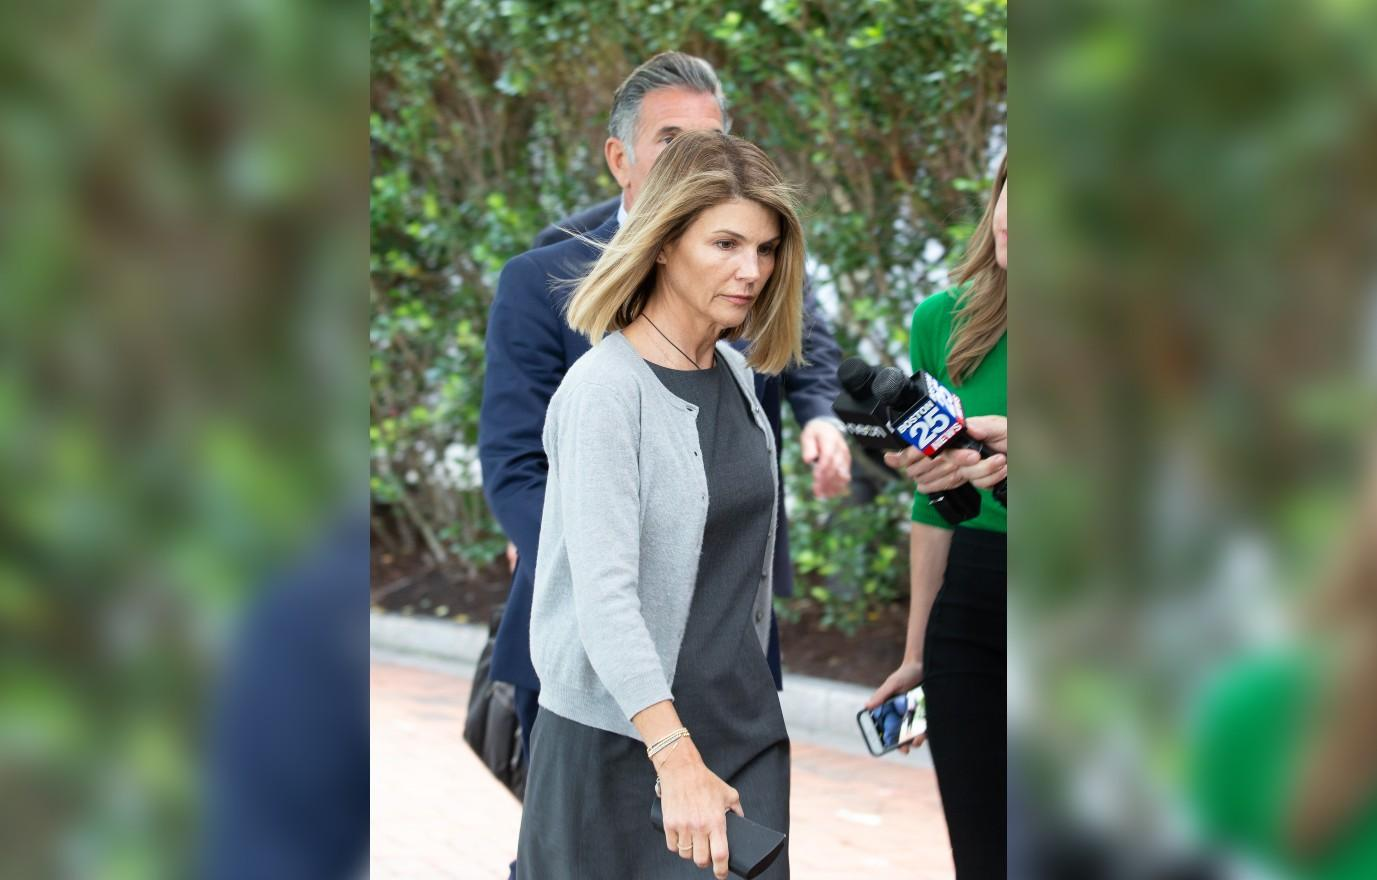 post prison tans lori loughlin and mossimo giannulli suffer through probation by jetting off to mexico couples tans jail crime